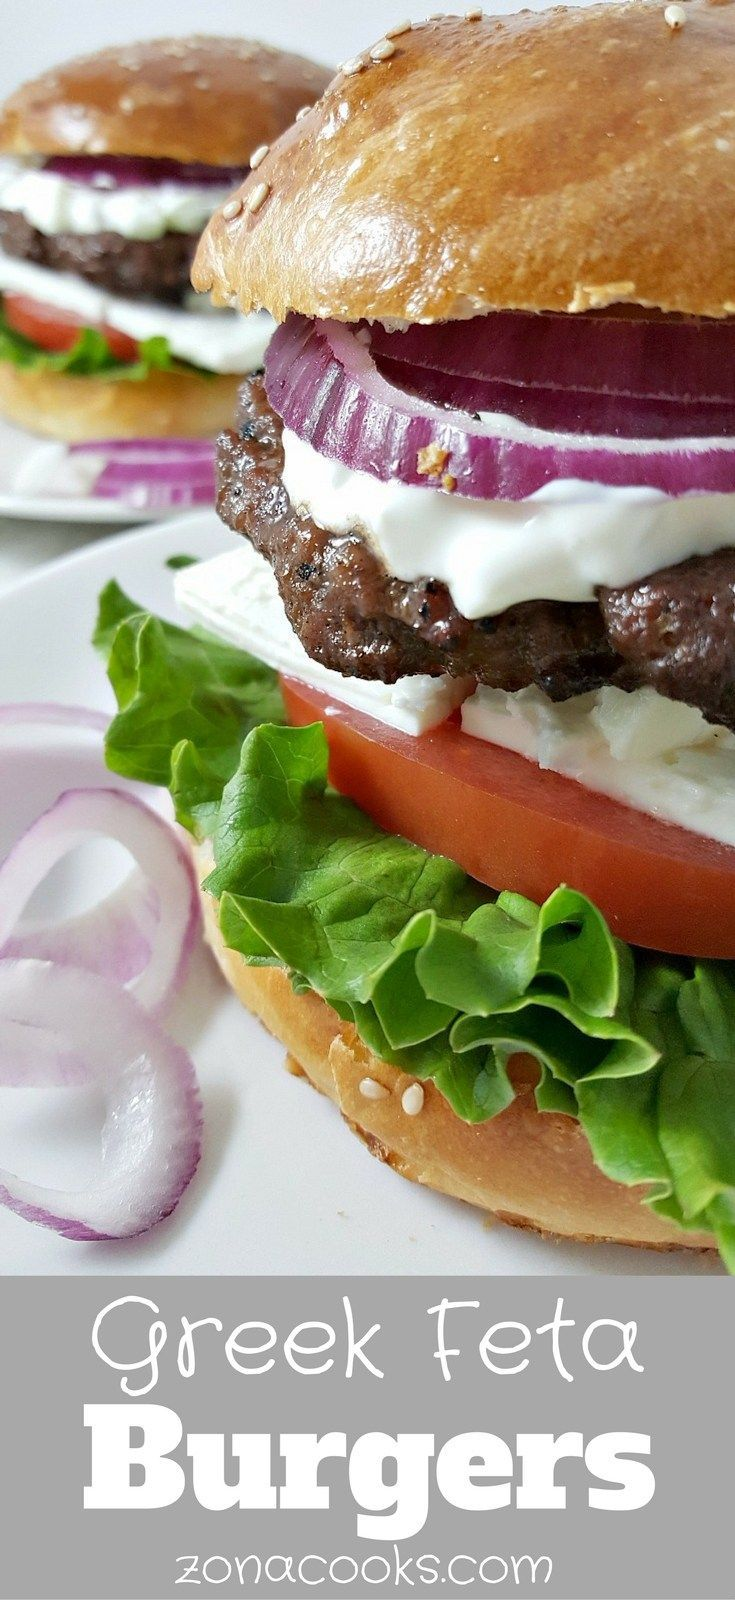 Greek Feta Burgers are big, delicious, juicy and beefy topped with lettuce, tomato, feta cheese, red onion, and a creamy cucumber sauce. This small batch recipe serves 2 and makes a great lunch, dinner, or romantic date night meal. Easy and quick, ready in just 15 minutes.